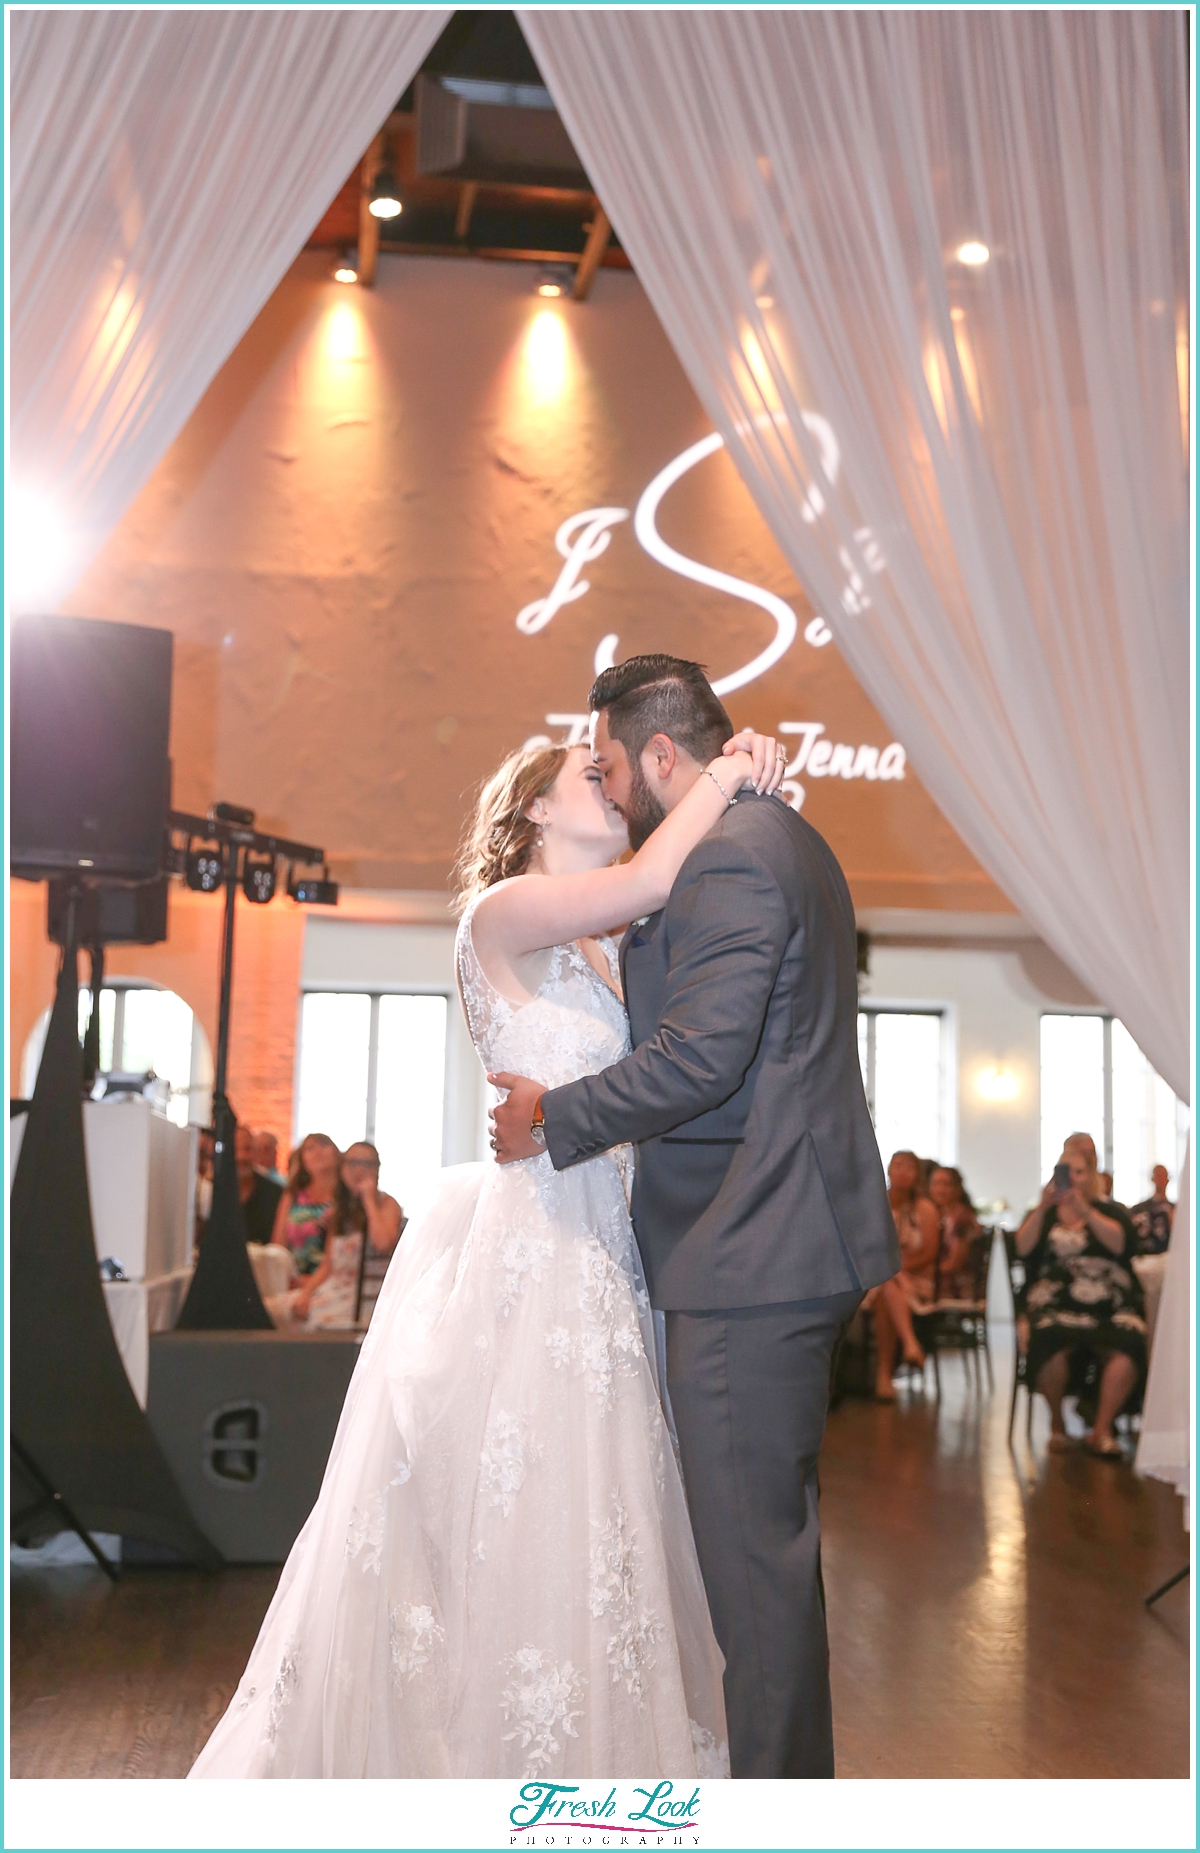 romantic first dance at the wedding